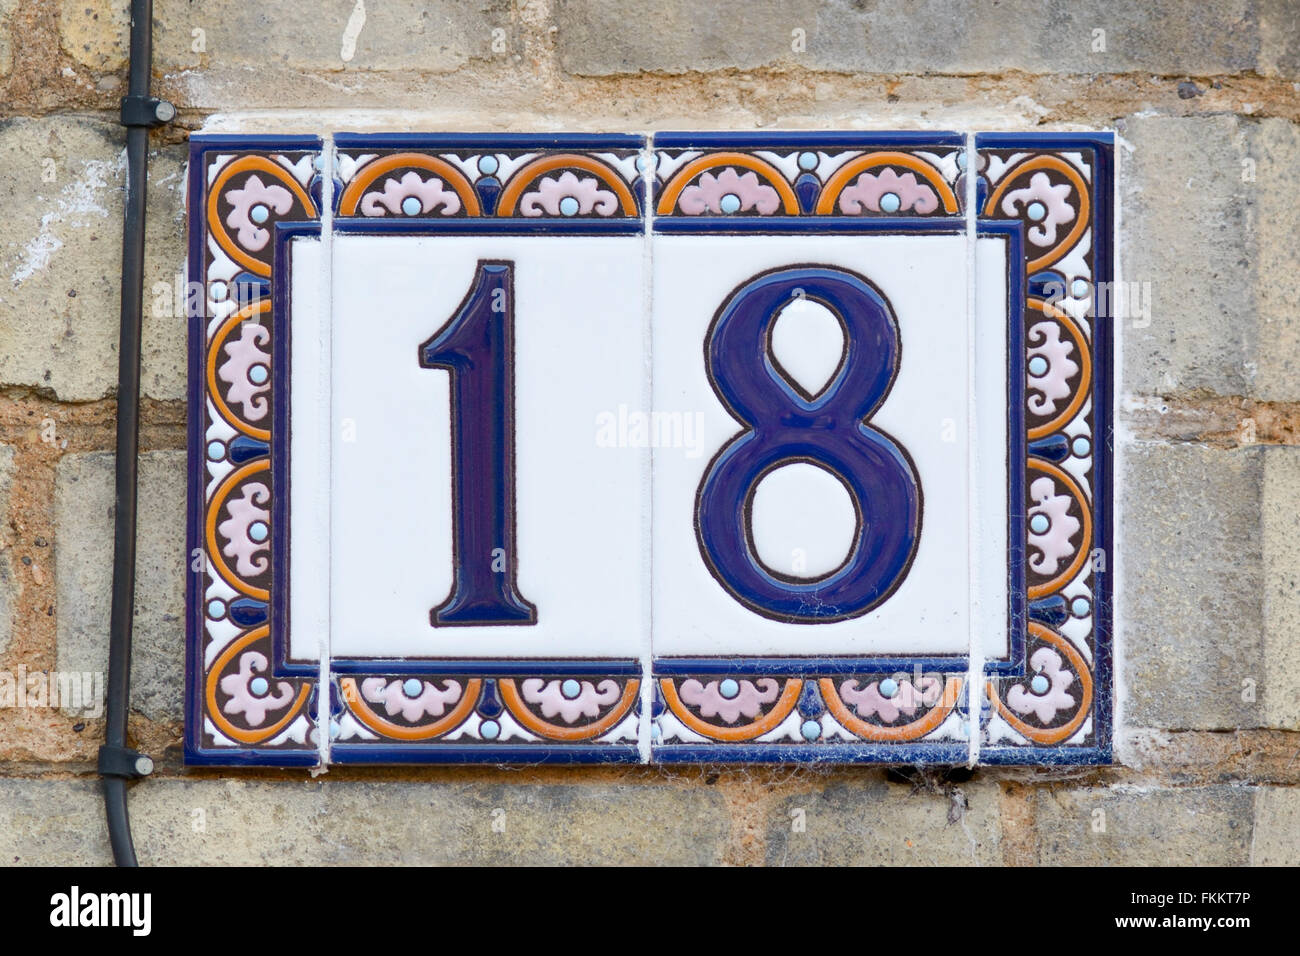 Il numero civico 18 sign in colorate piastrelle di ceramica foto